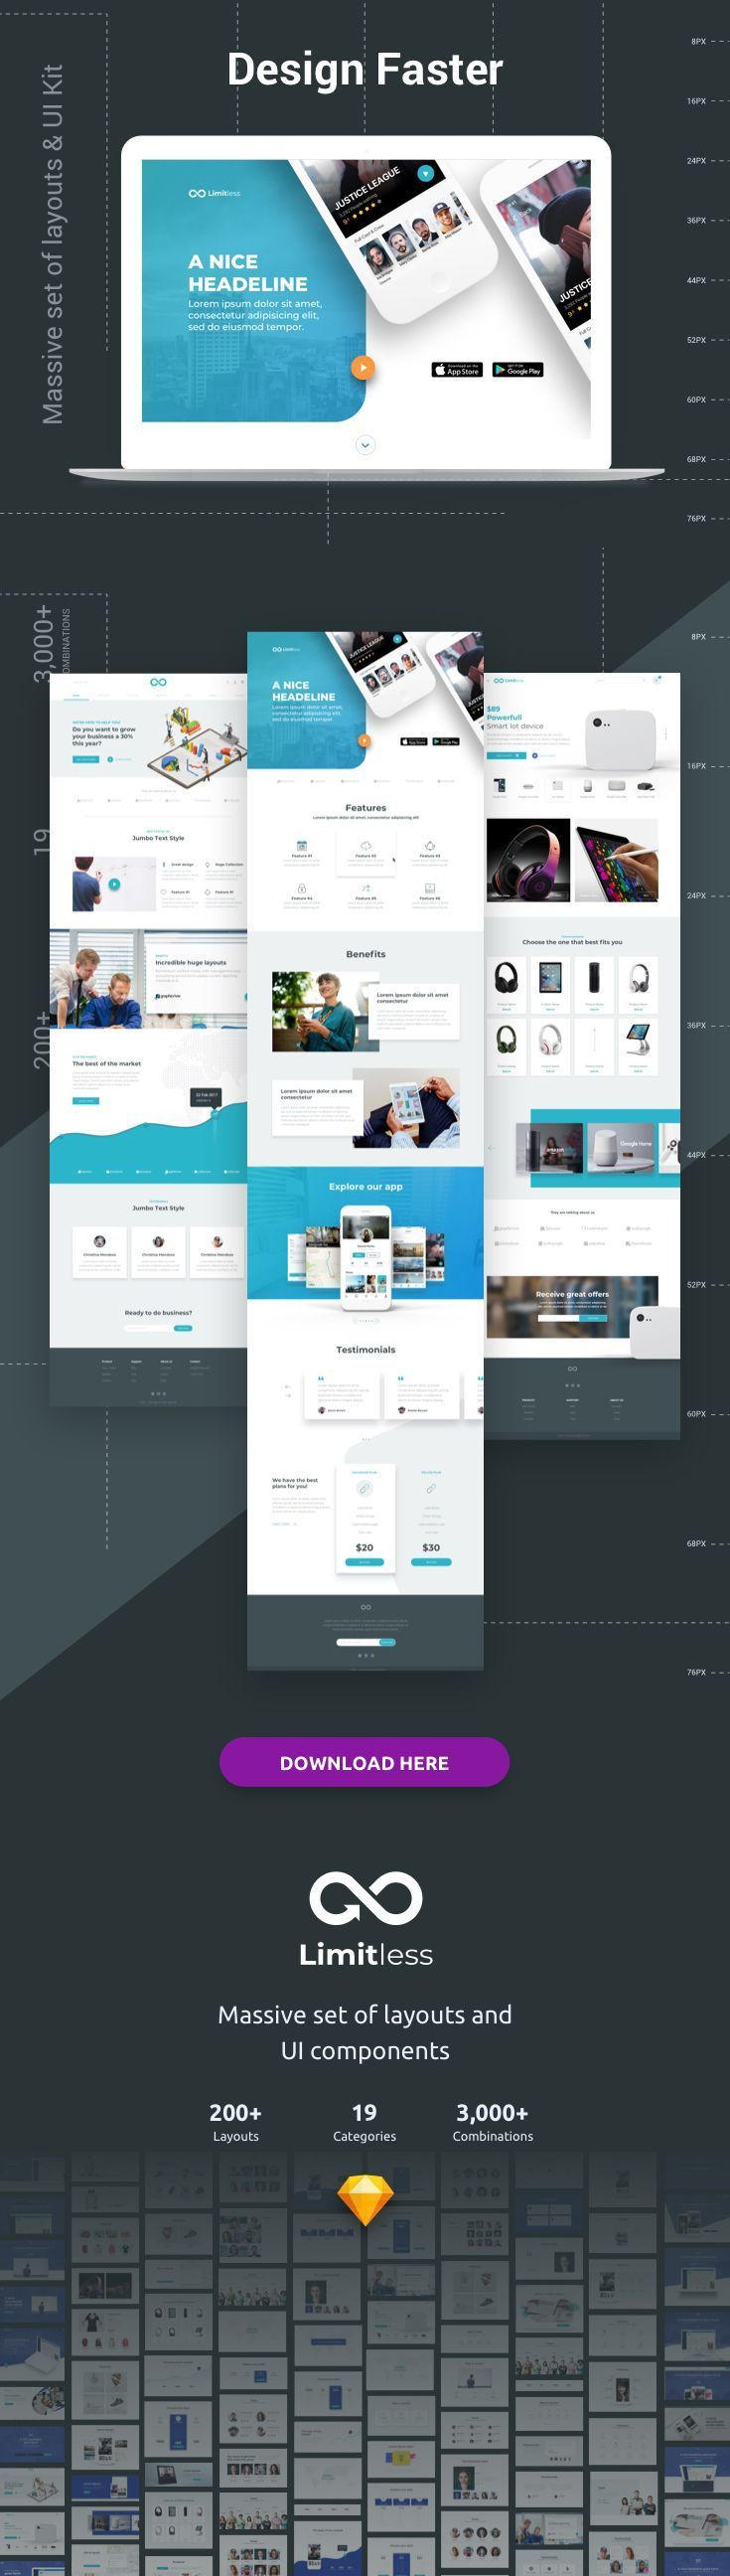 Limitless Web Design Web Design Projects Layout